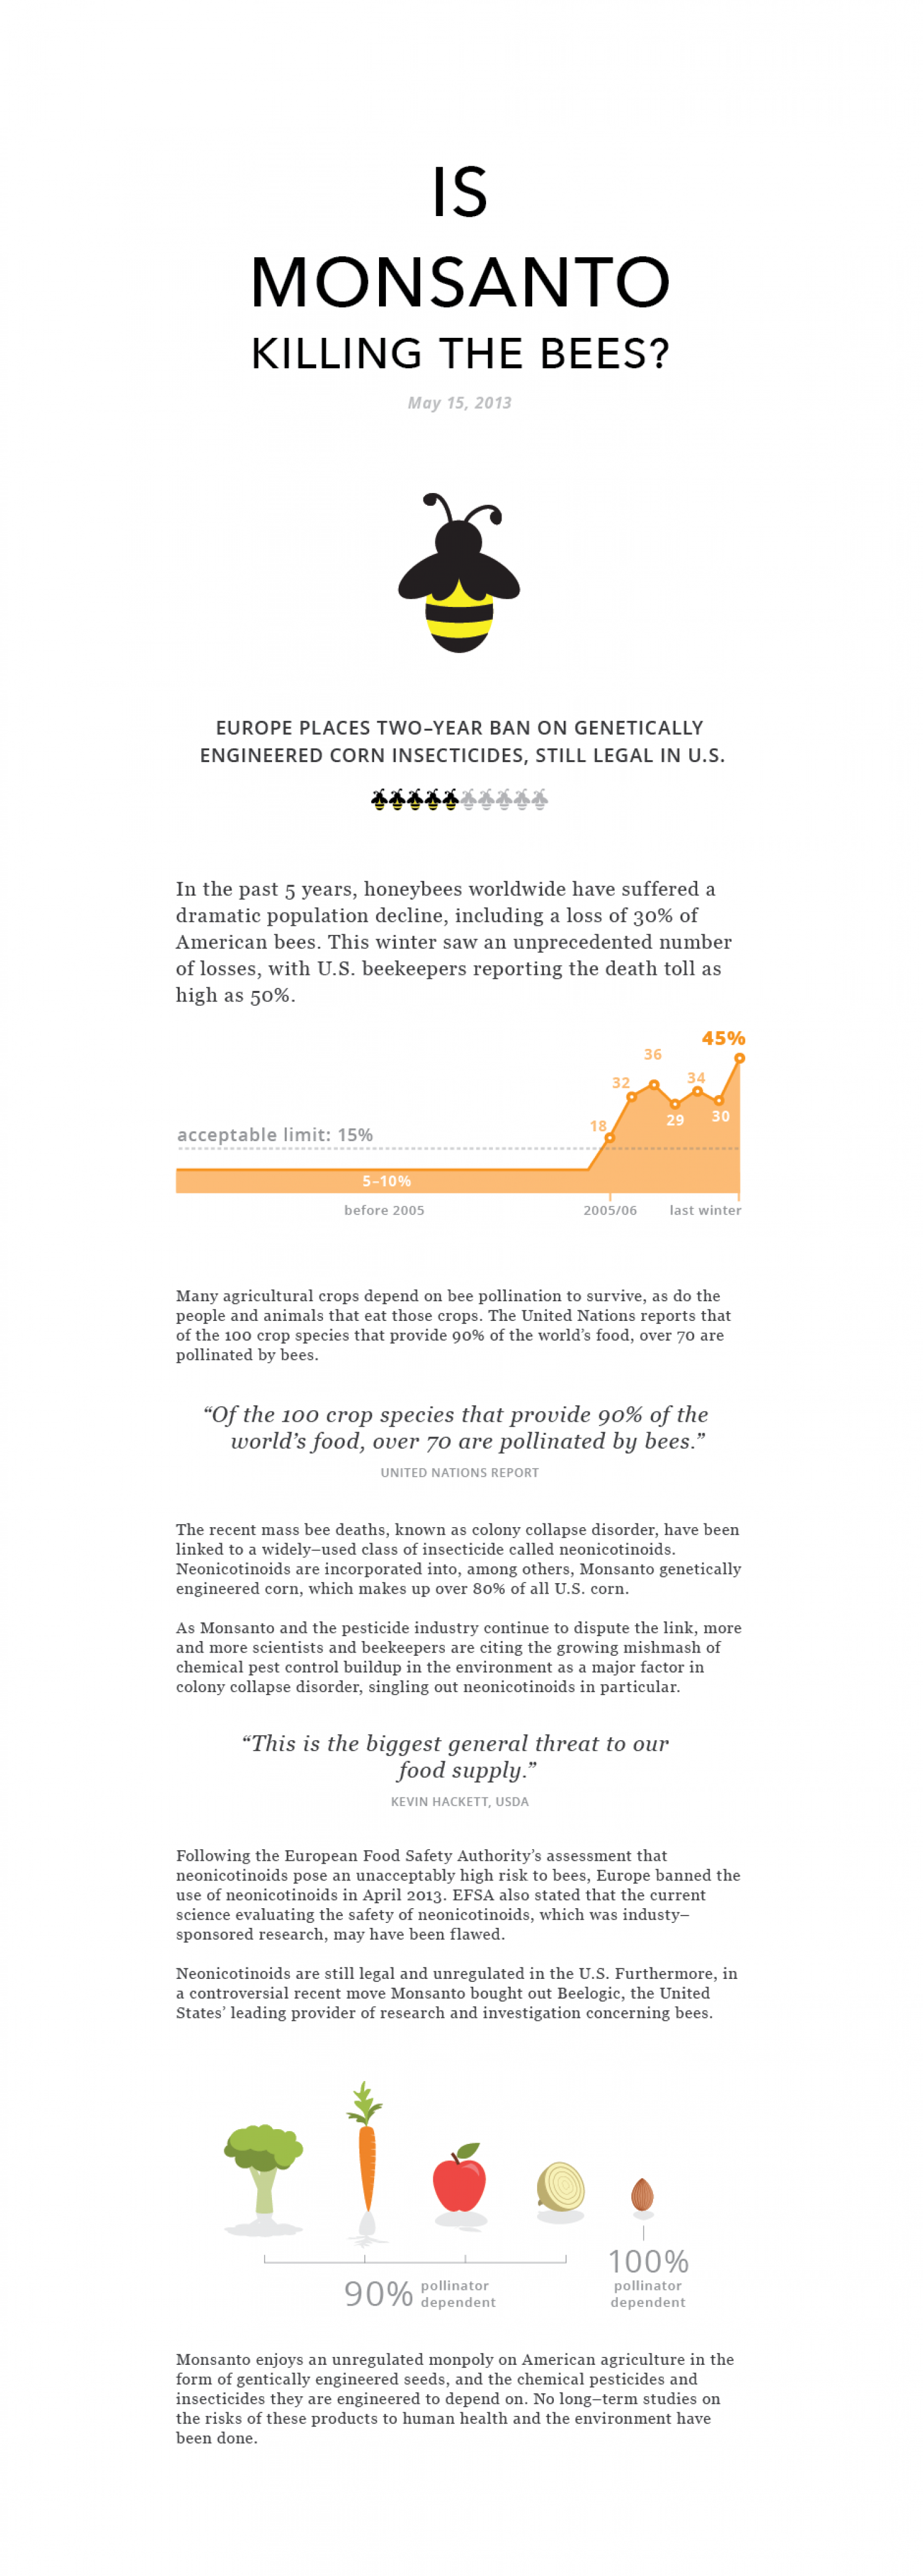 Is Monsanto Killing the Bees? Infographic